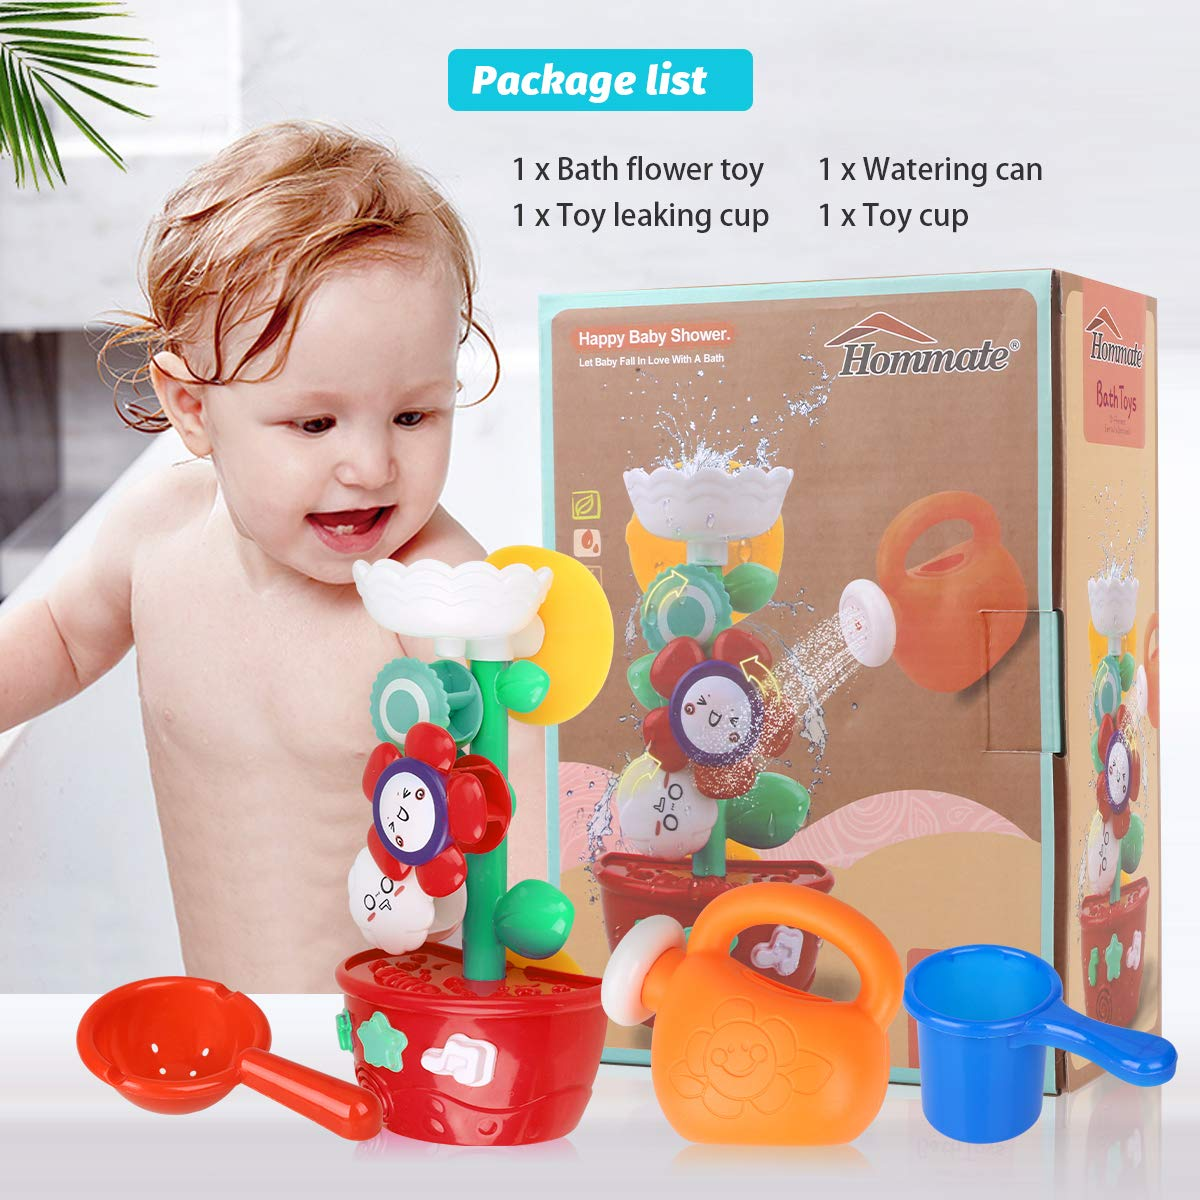 Bath Toys Toddlers Bathtub Toy Flower Bath Toy for Babies Kids 1 2 3 Year Old Girls Boys Bath Wall Toy 1 Mini Sprinkler 2 Toys Cups Fill Flow and Spin with Strong Suction Cups Color Box Gift Ideal